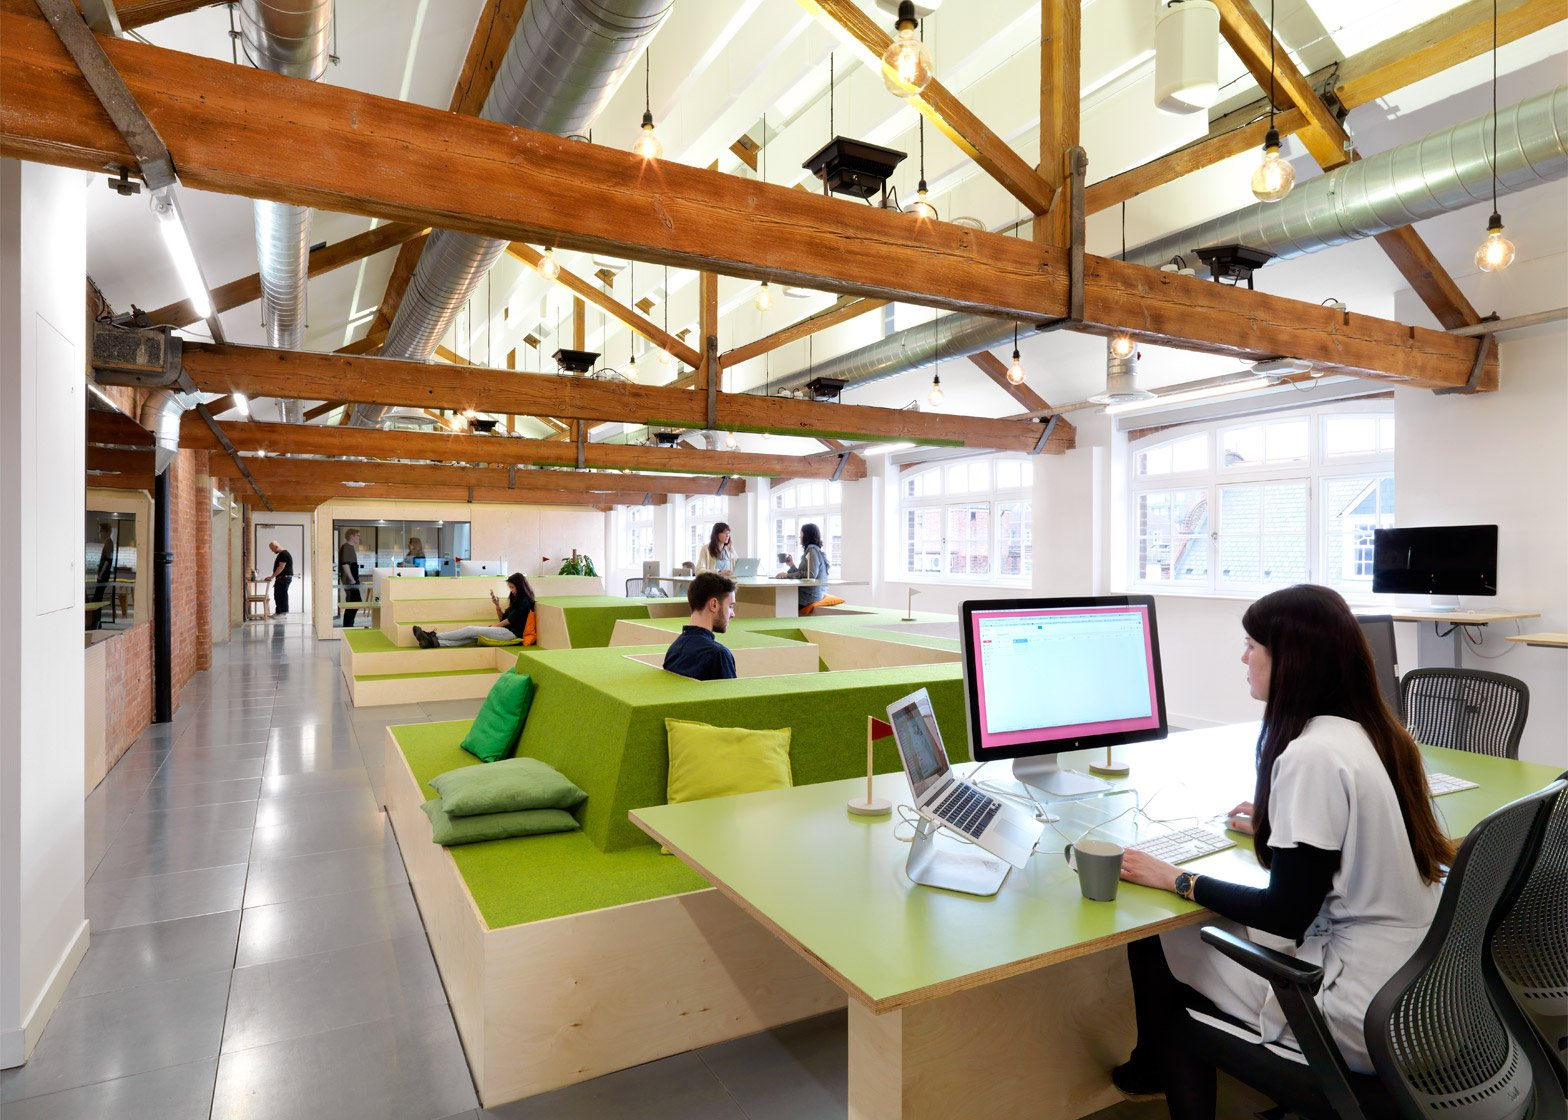 Open Plan Office Design Is Preventing Workers From Concentrating, Studies  Find